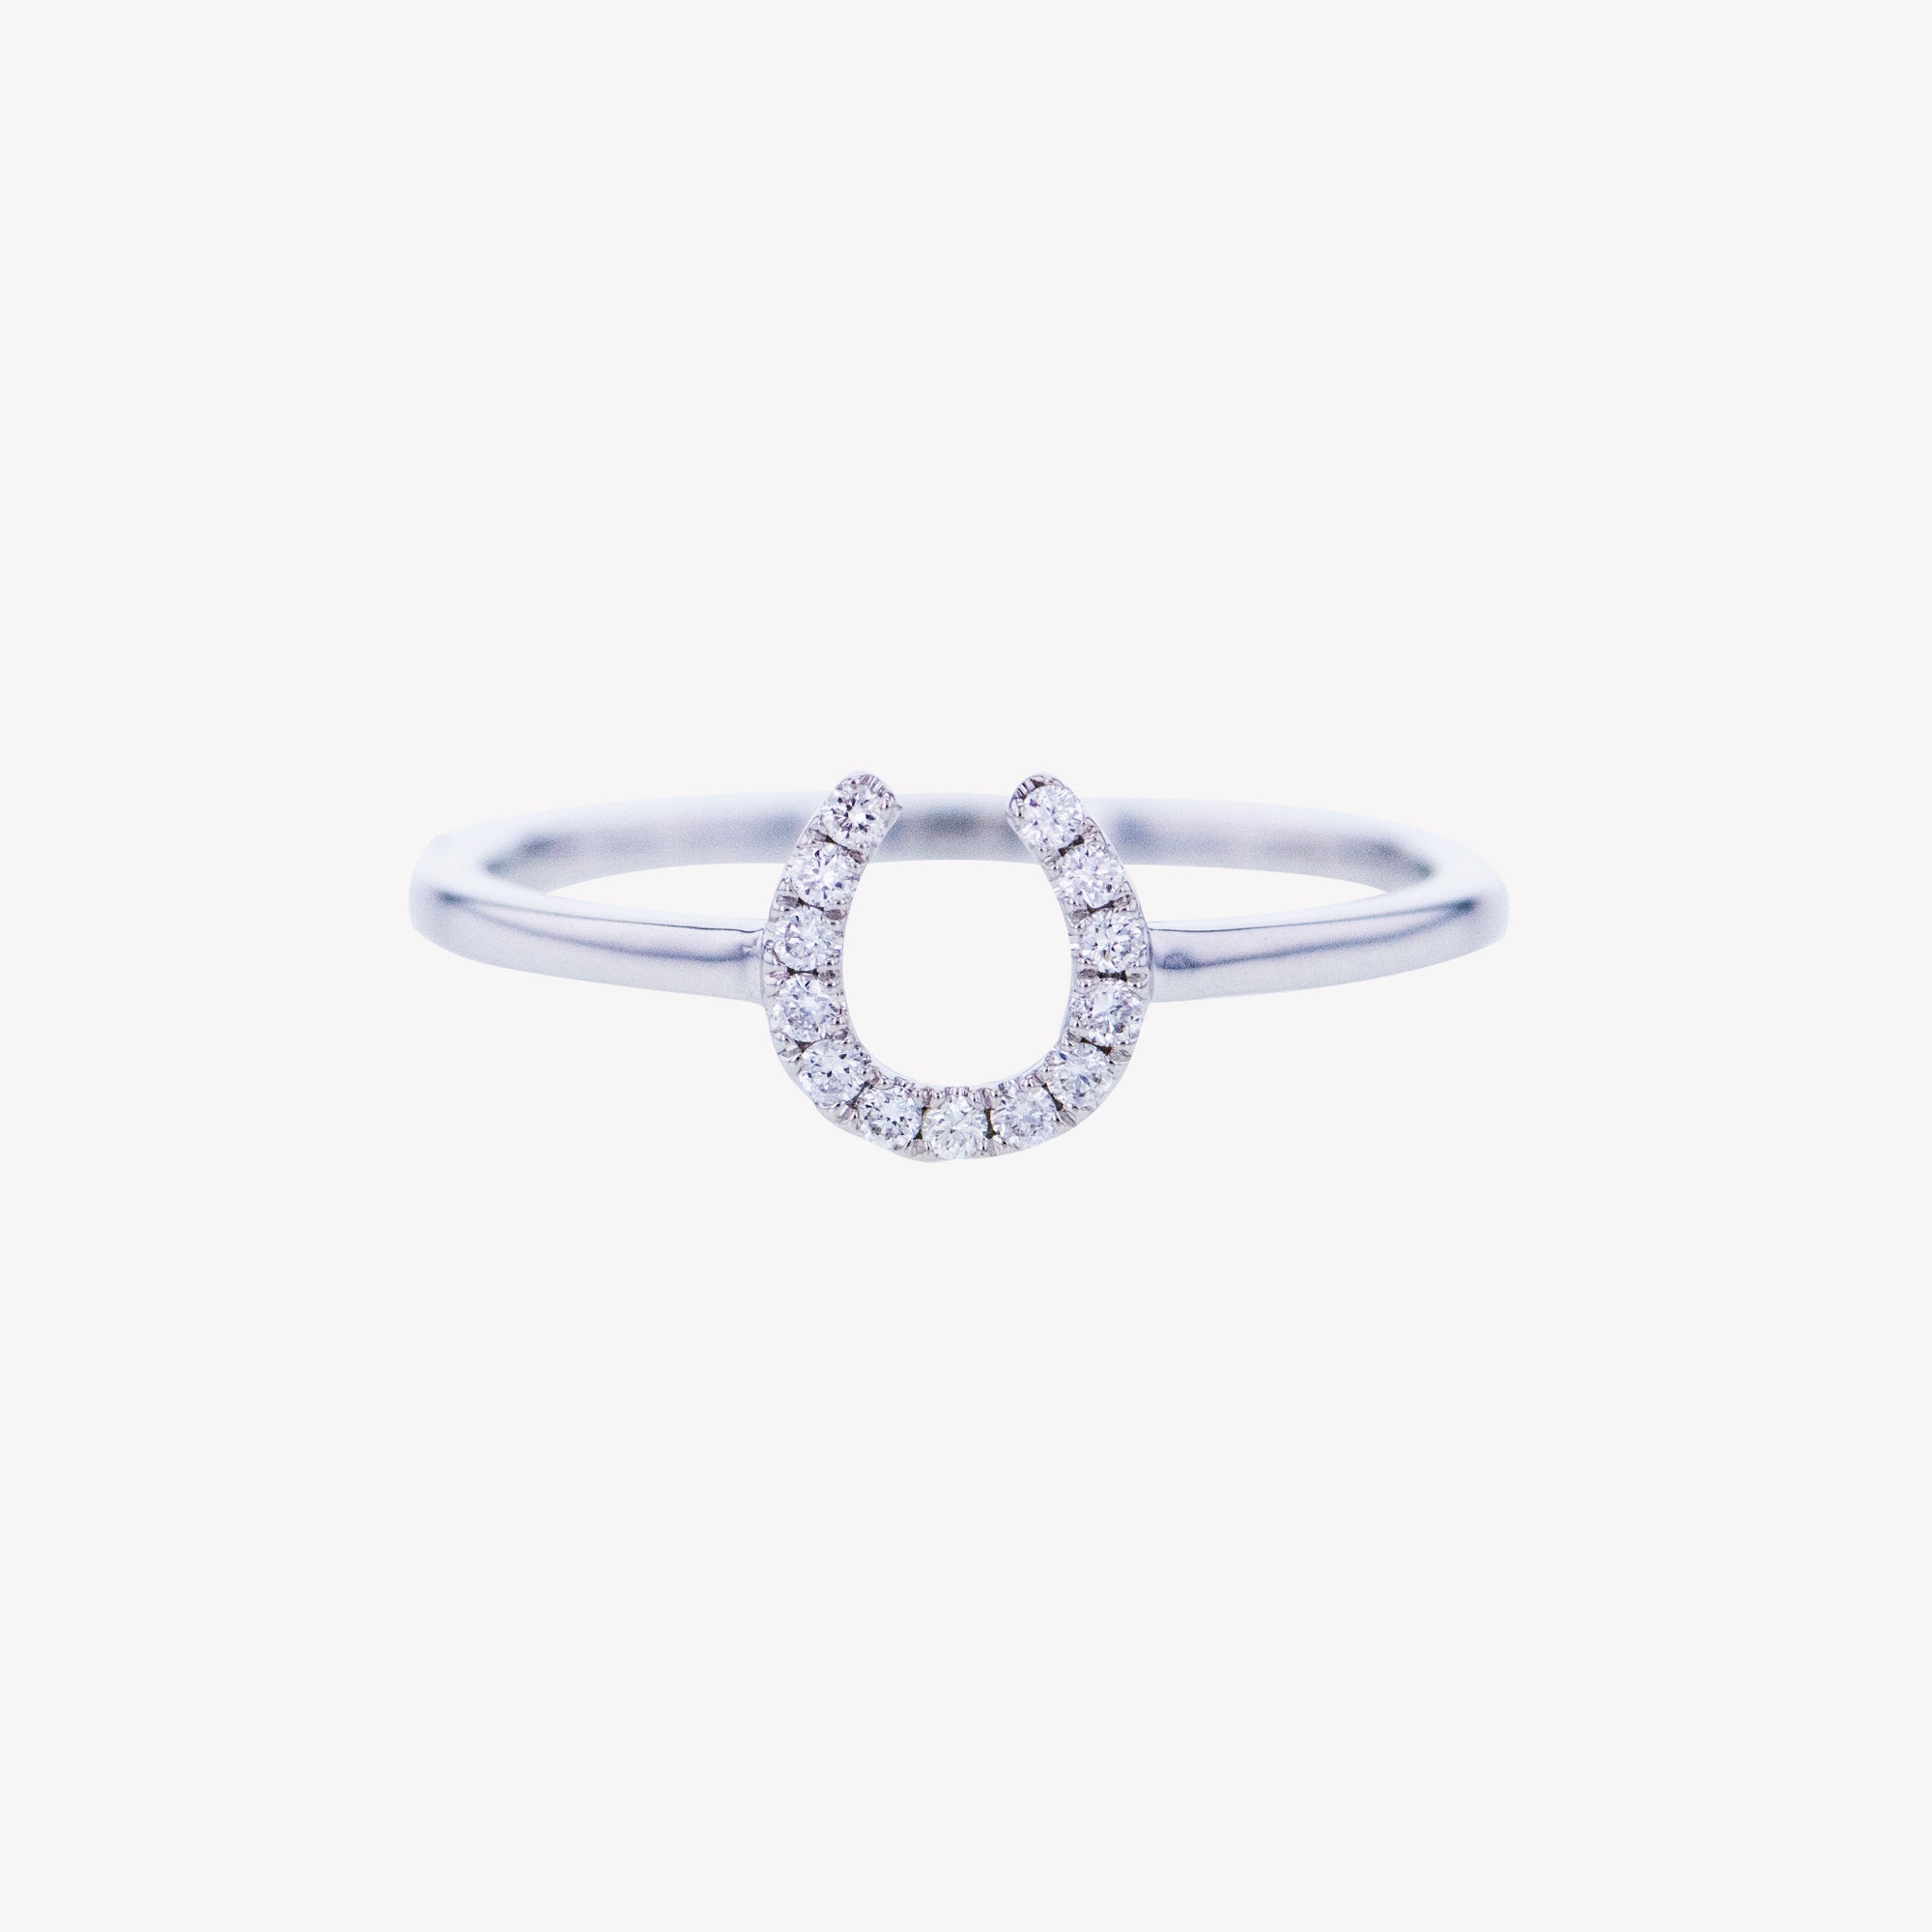 Horse Shoe Ring in White Gold